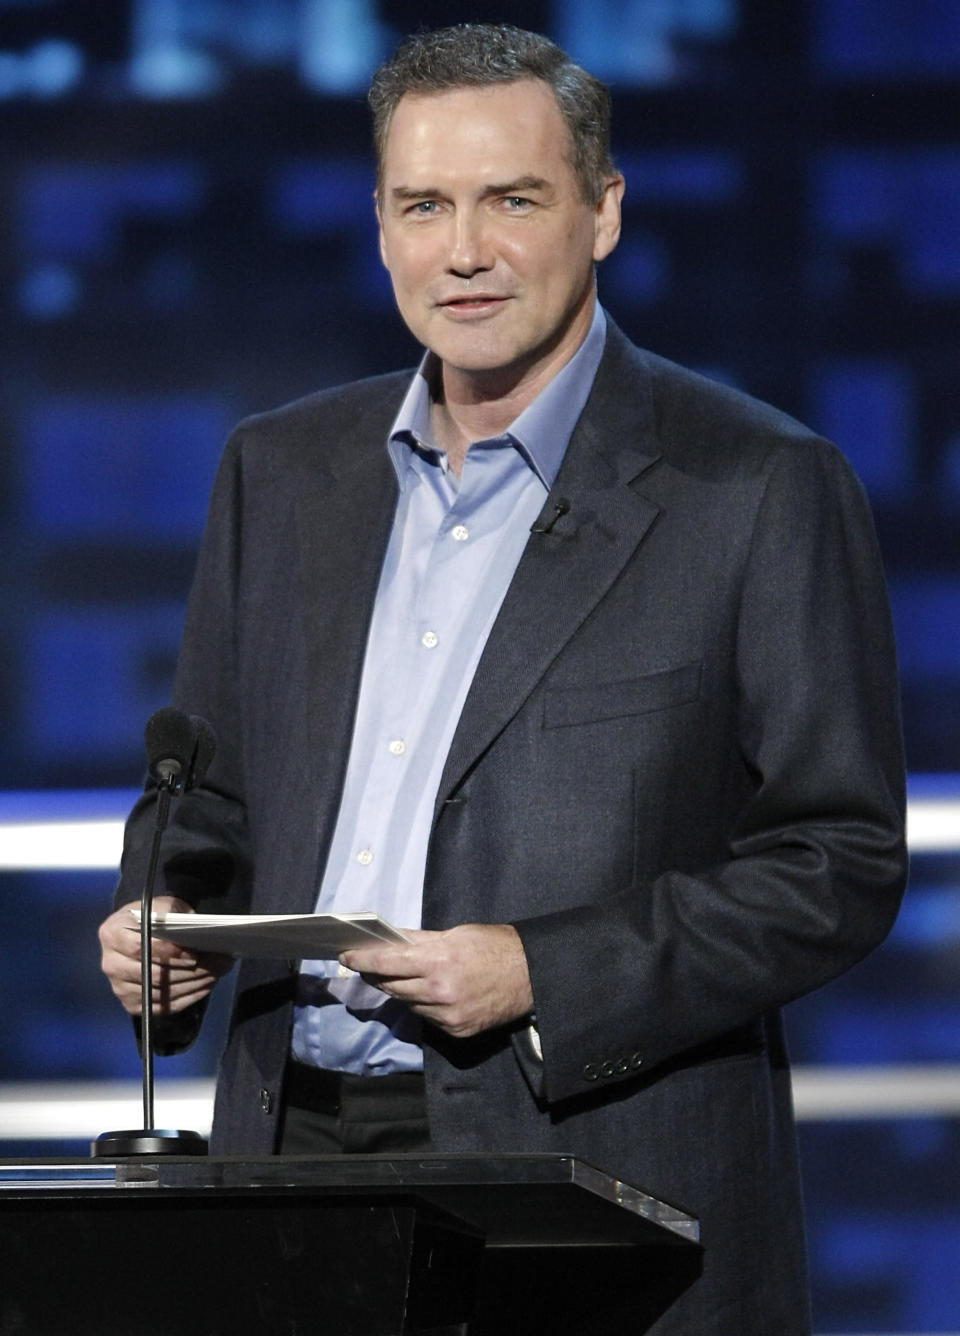 """FILE - Actor and comedian Norm Macdonald appears at the """"Comedy Central Roast of Bob Saget"""" in Burbank, Calif. on Aug. 3, 2008. Macdonald, a comedian and former cast member on """"Saturday Night Live,"""" died Tuesday, Sept. 14, 2021, after a nine-year battle with cancer that he kept private, according to Brillstein Entertainment Partners, his management firm in Los Angeles. He was 61. (AP Photo/Dan Steinberg, File)"""